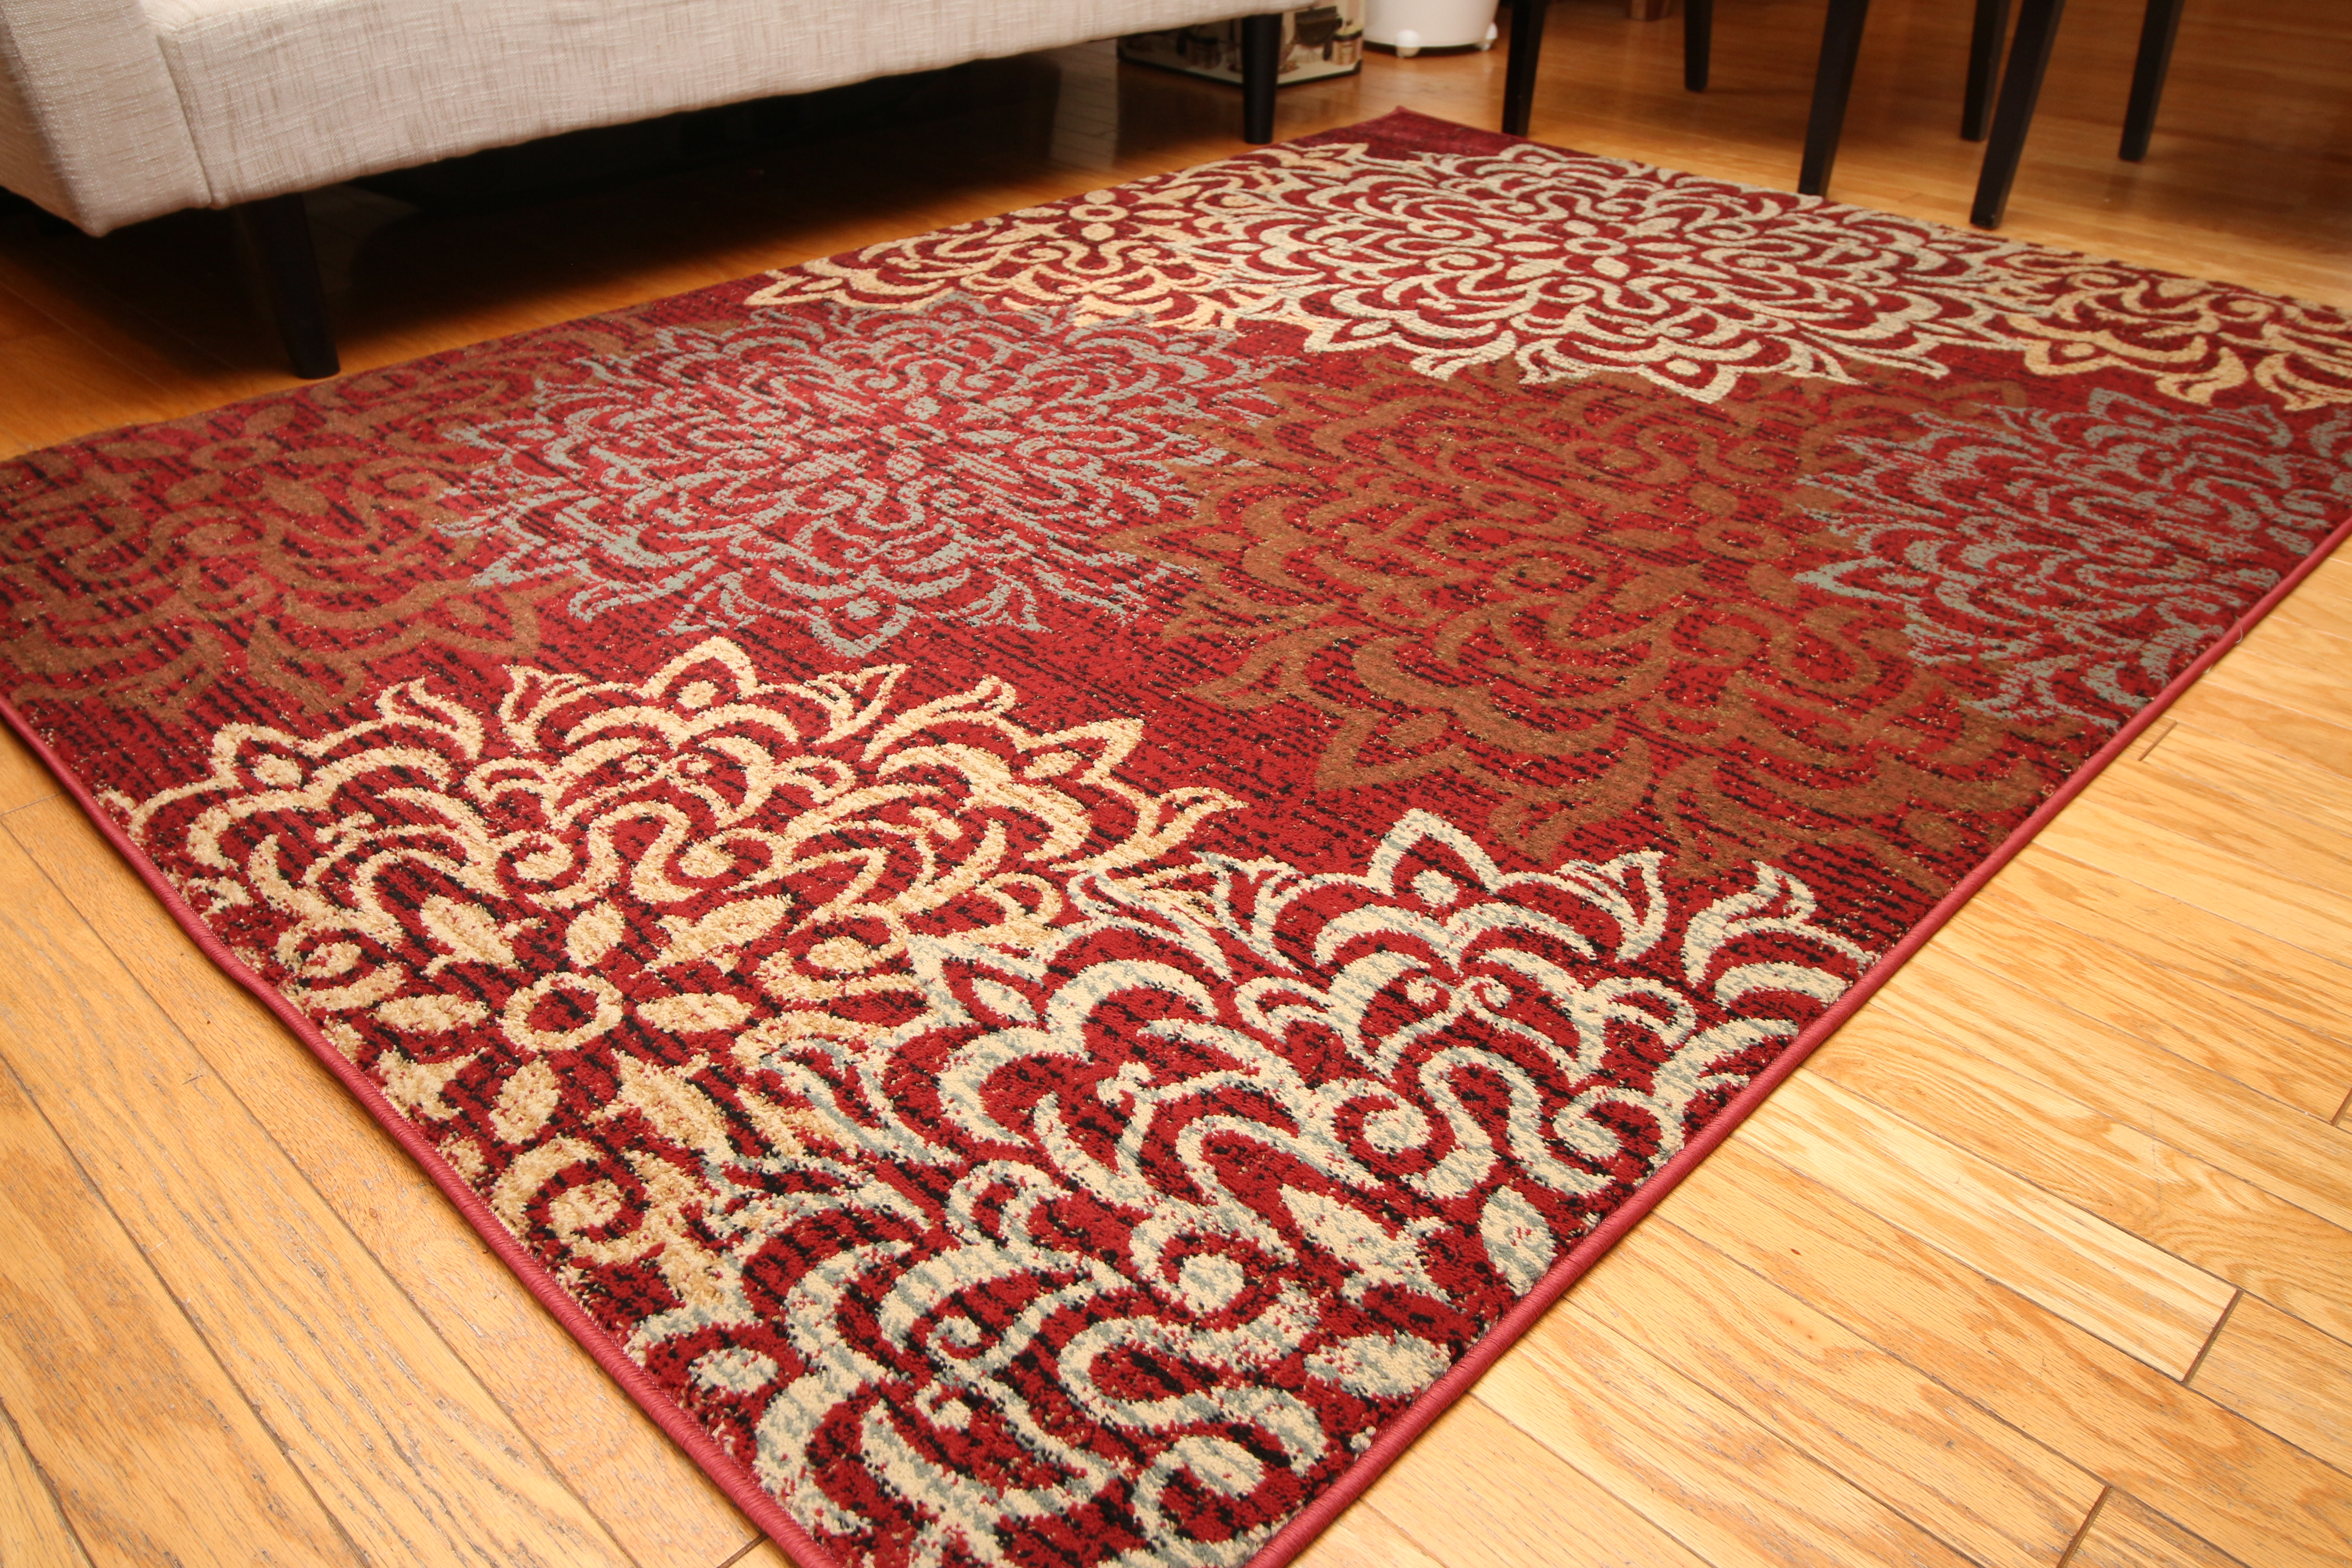 Wholesale Area Rugs By Superior Importers   Rugs Manufactuer Direct